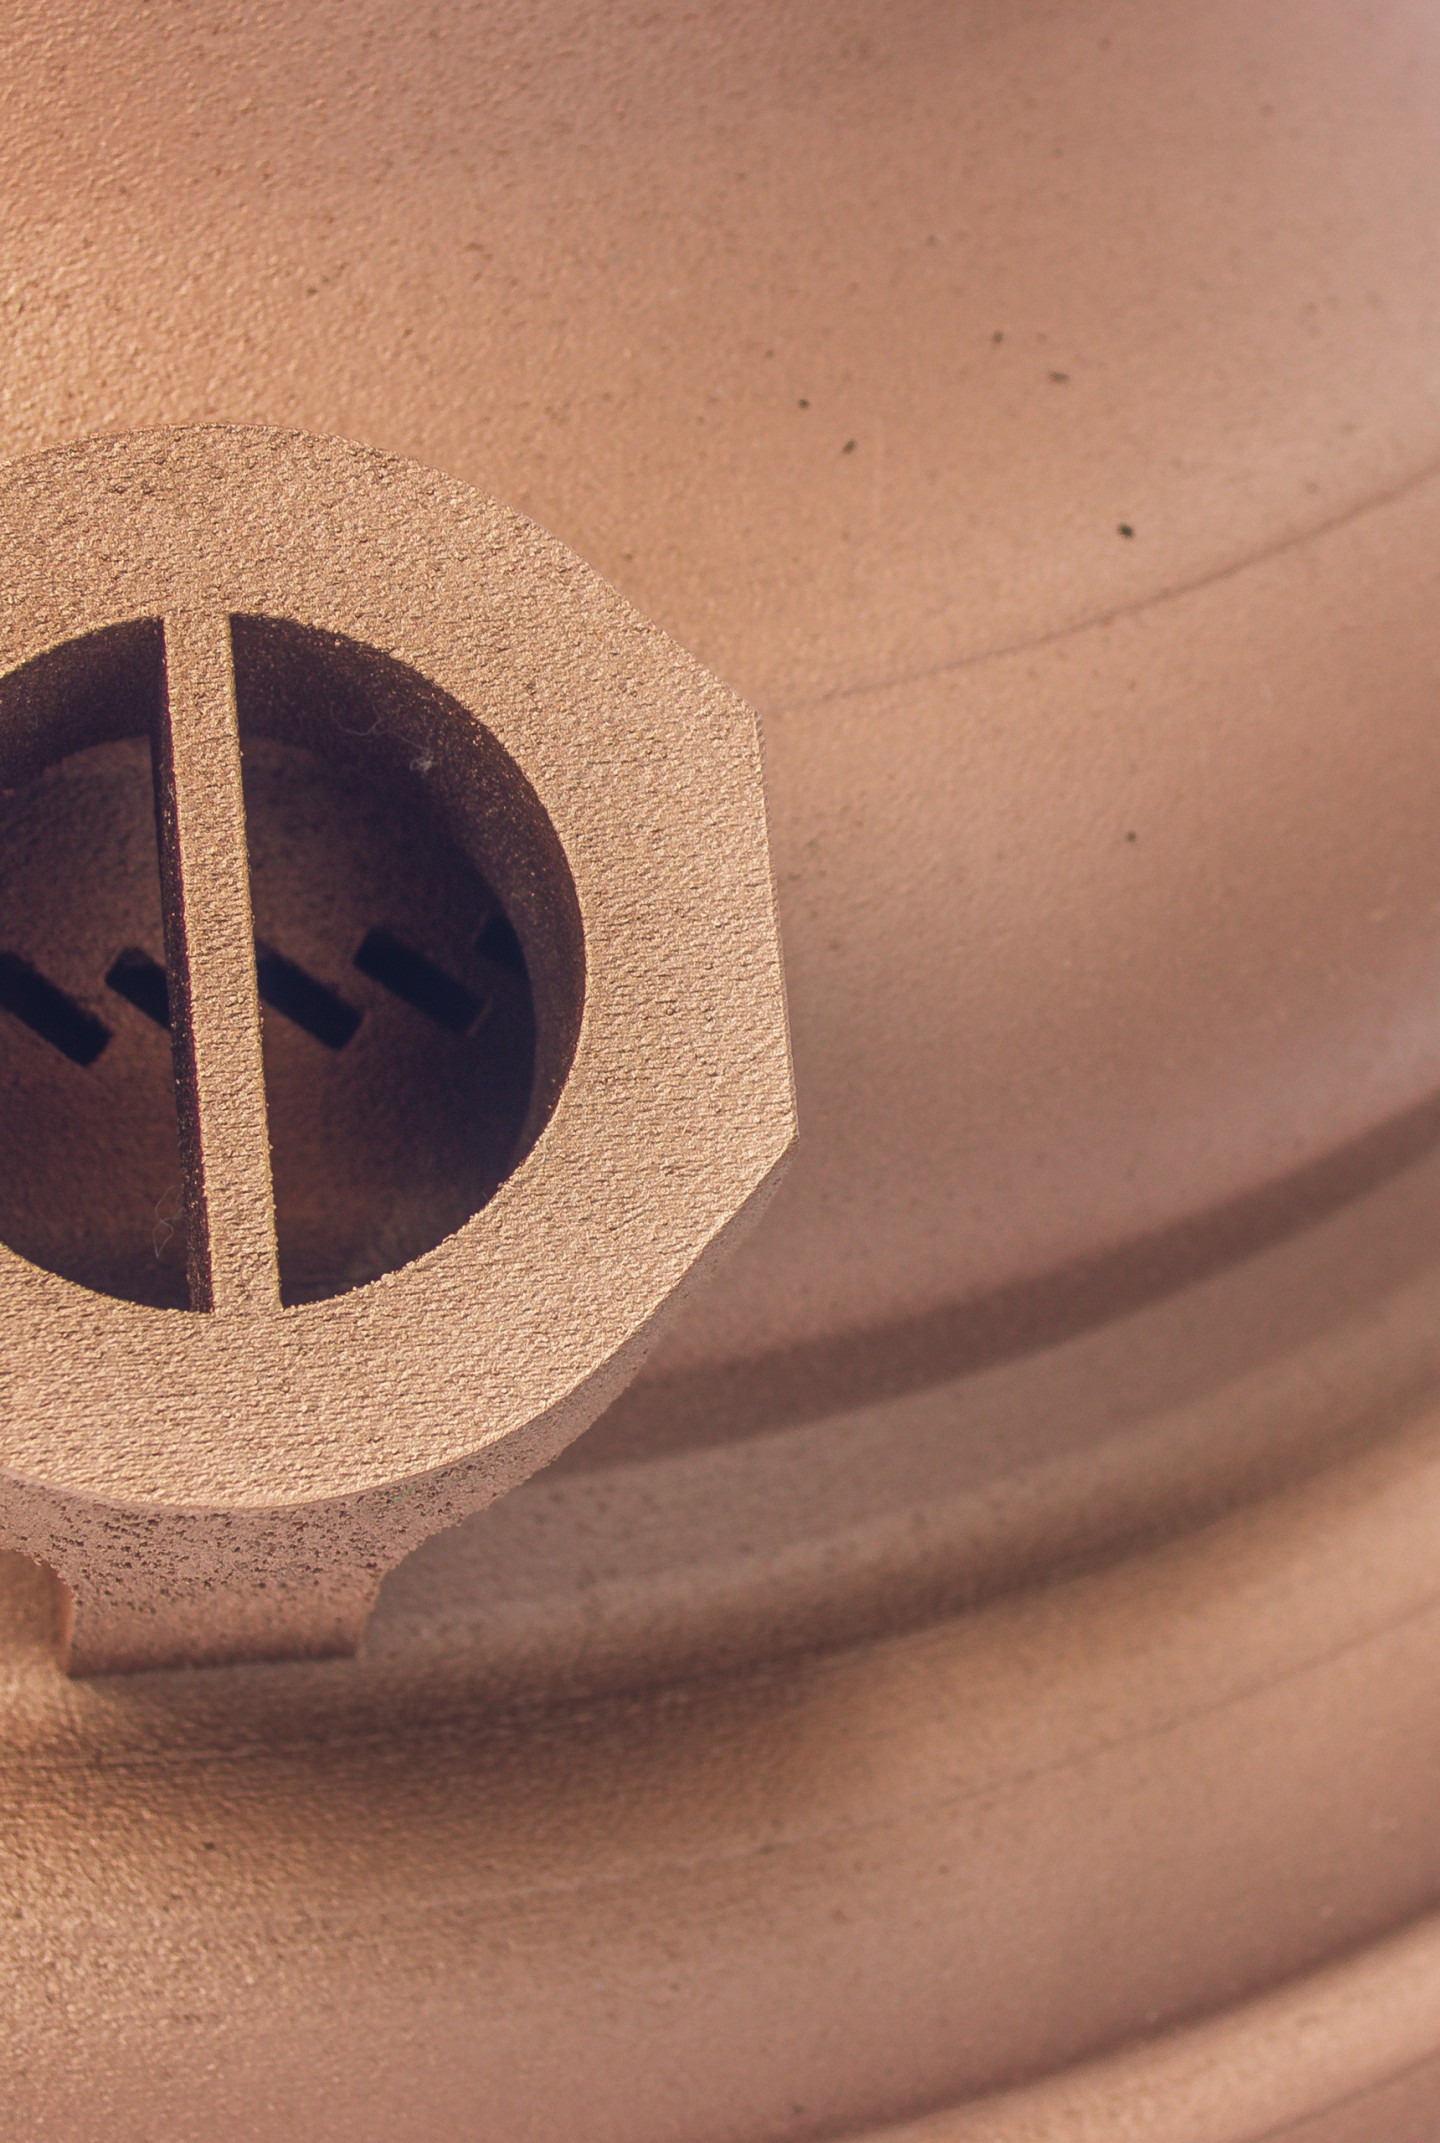 Combustion chamber detail view